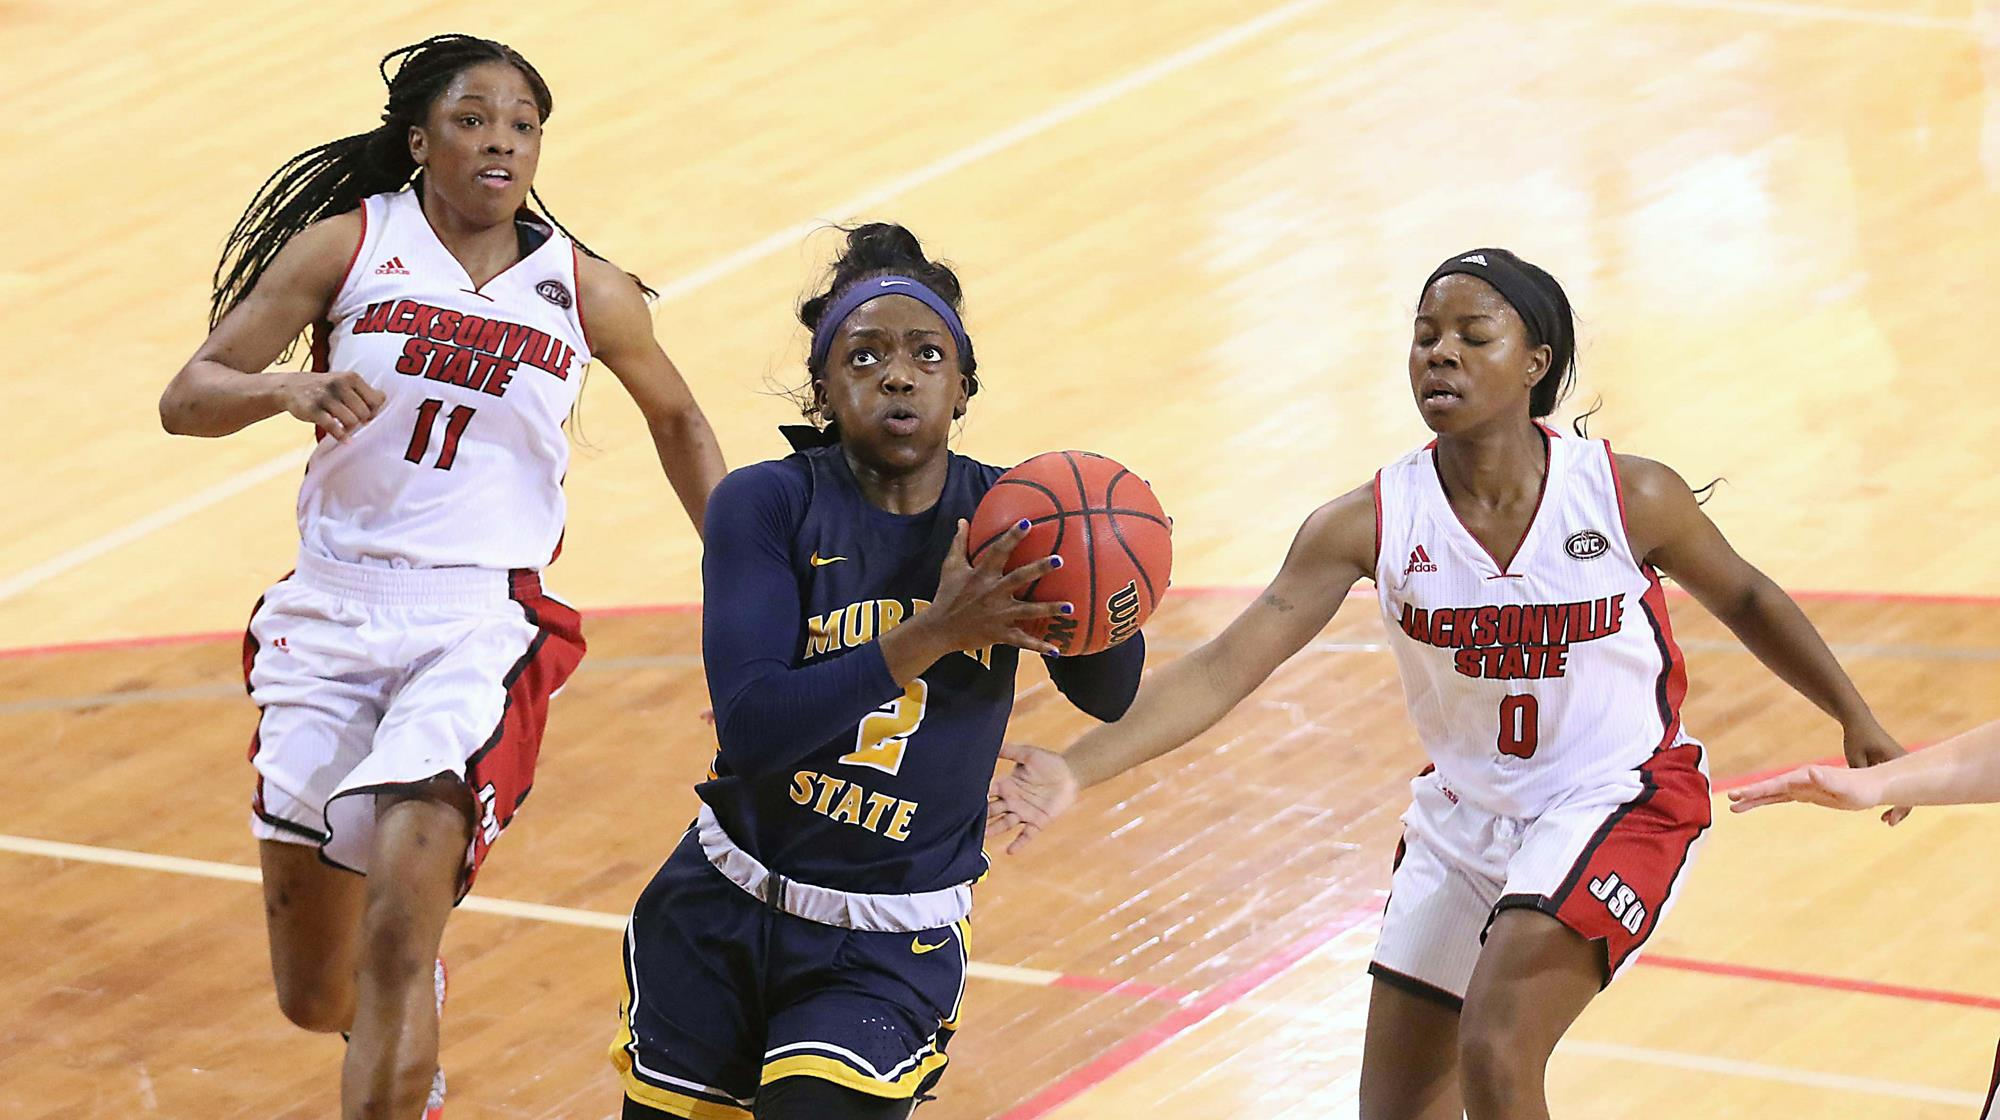 Murray State's James wins weekly OVC women's basketball award